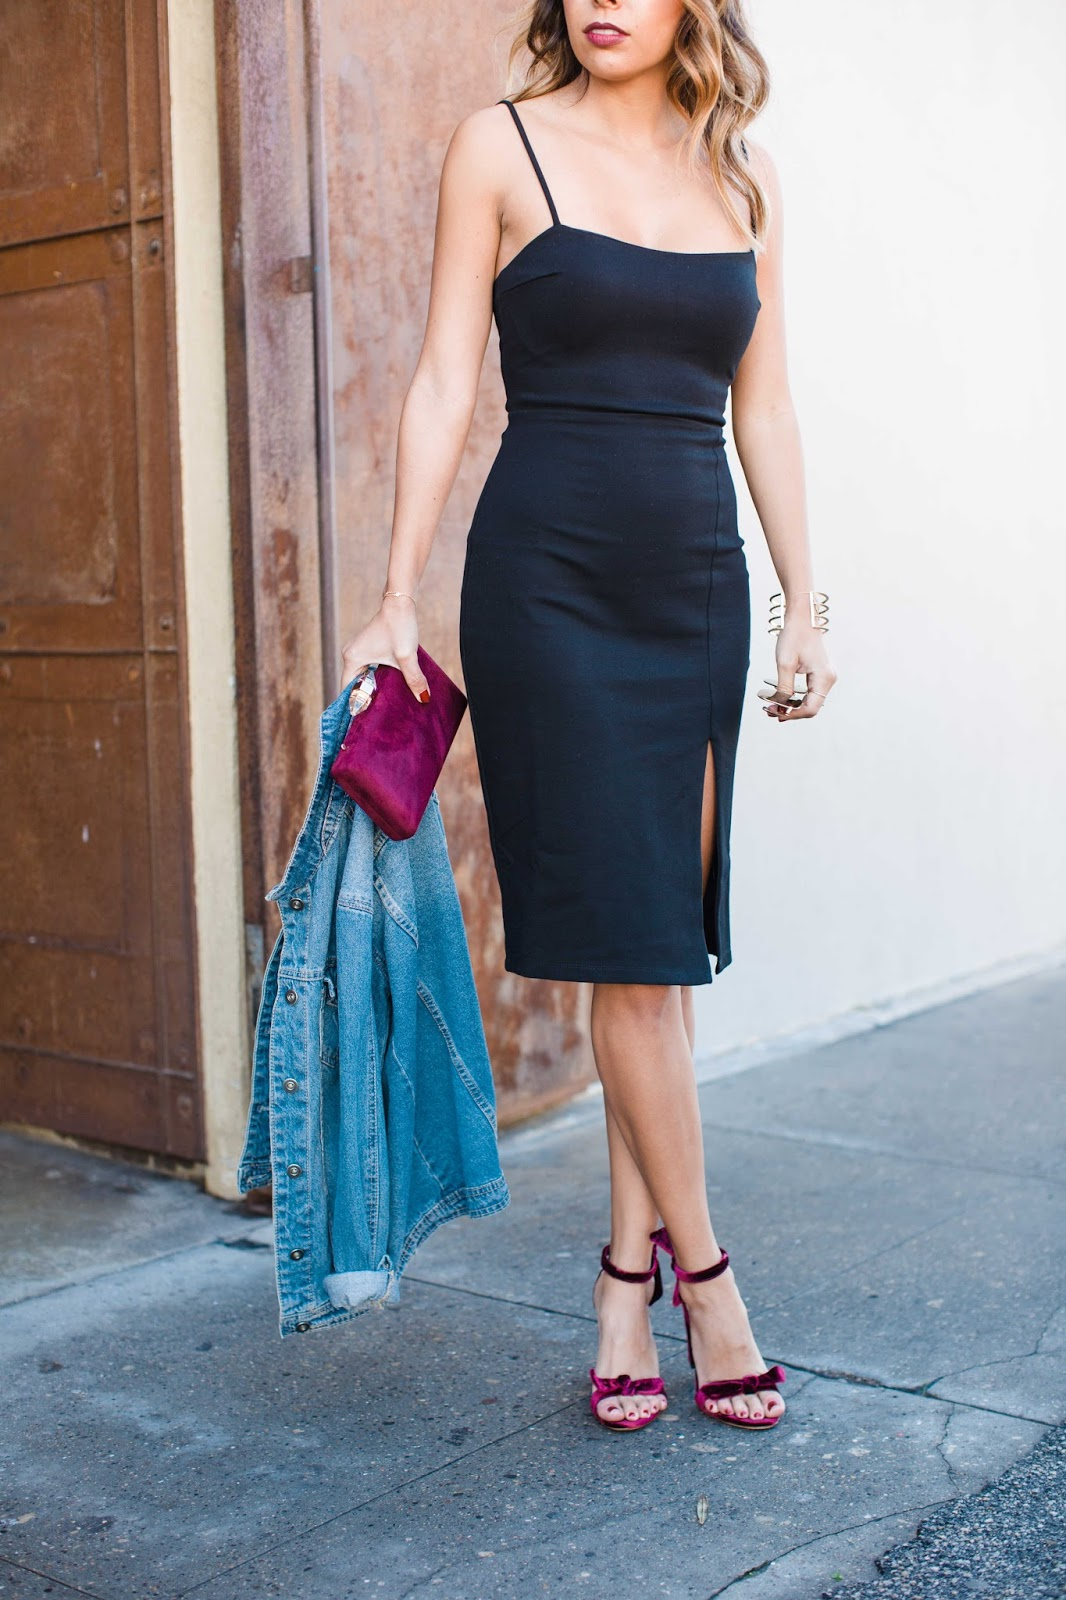 valentine's day outfit idea, lbd, little black dress, lulus black dress, what to wear for valentine's day